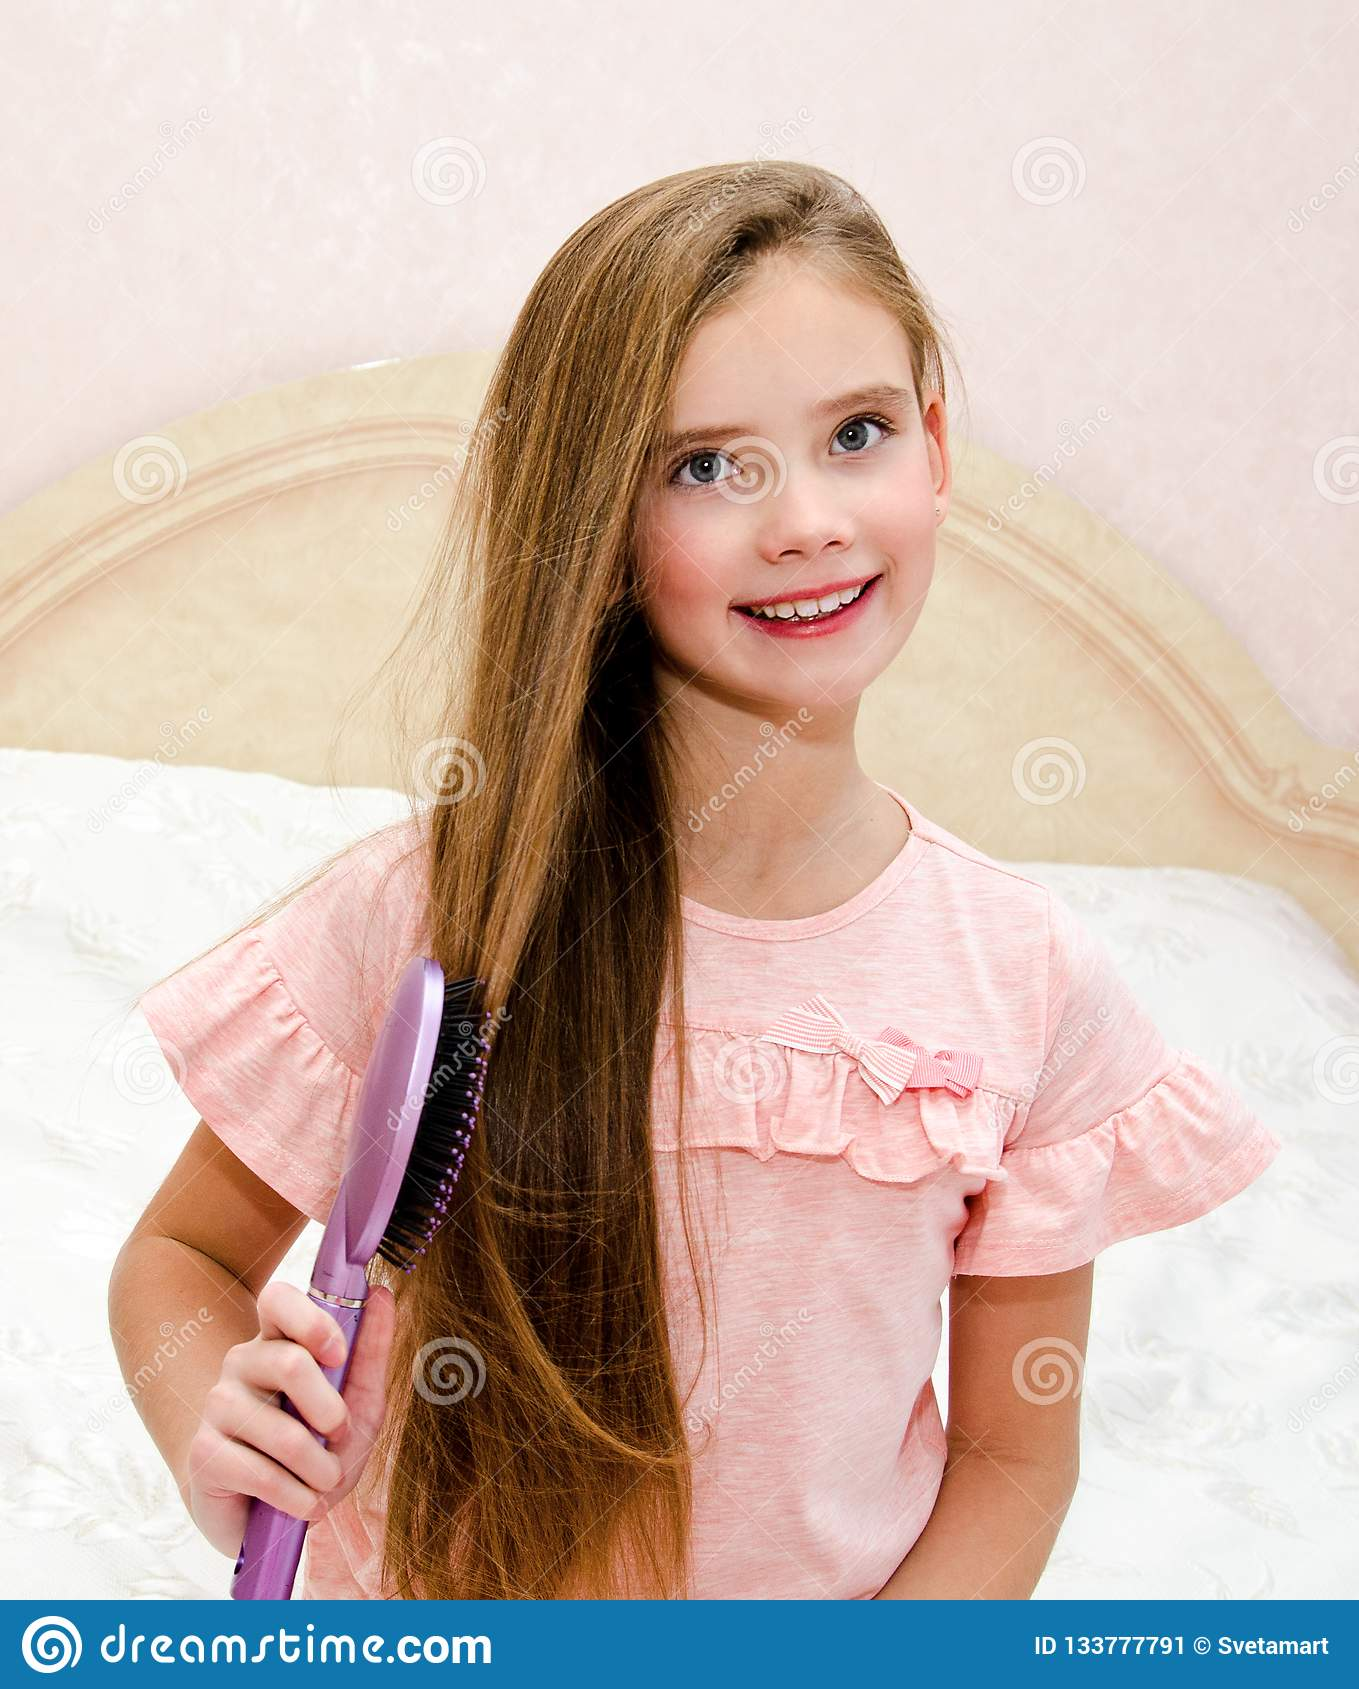 Portrait of cute smiling little girl child brushing her hair